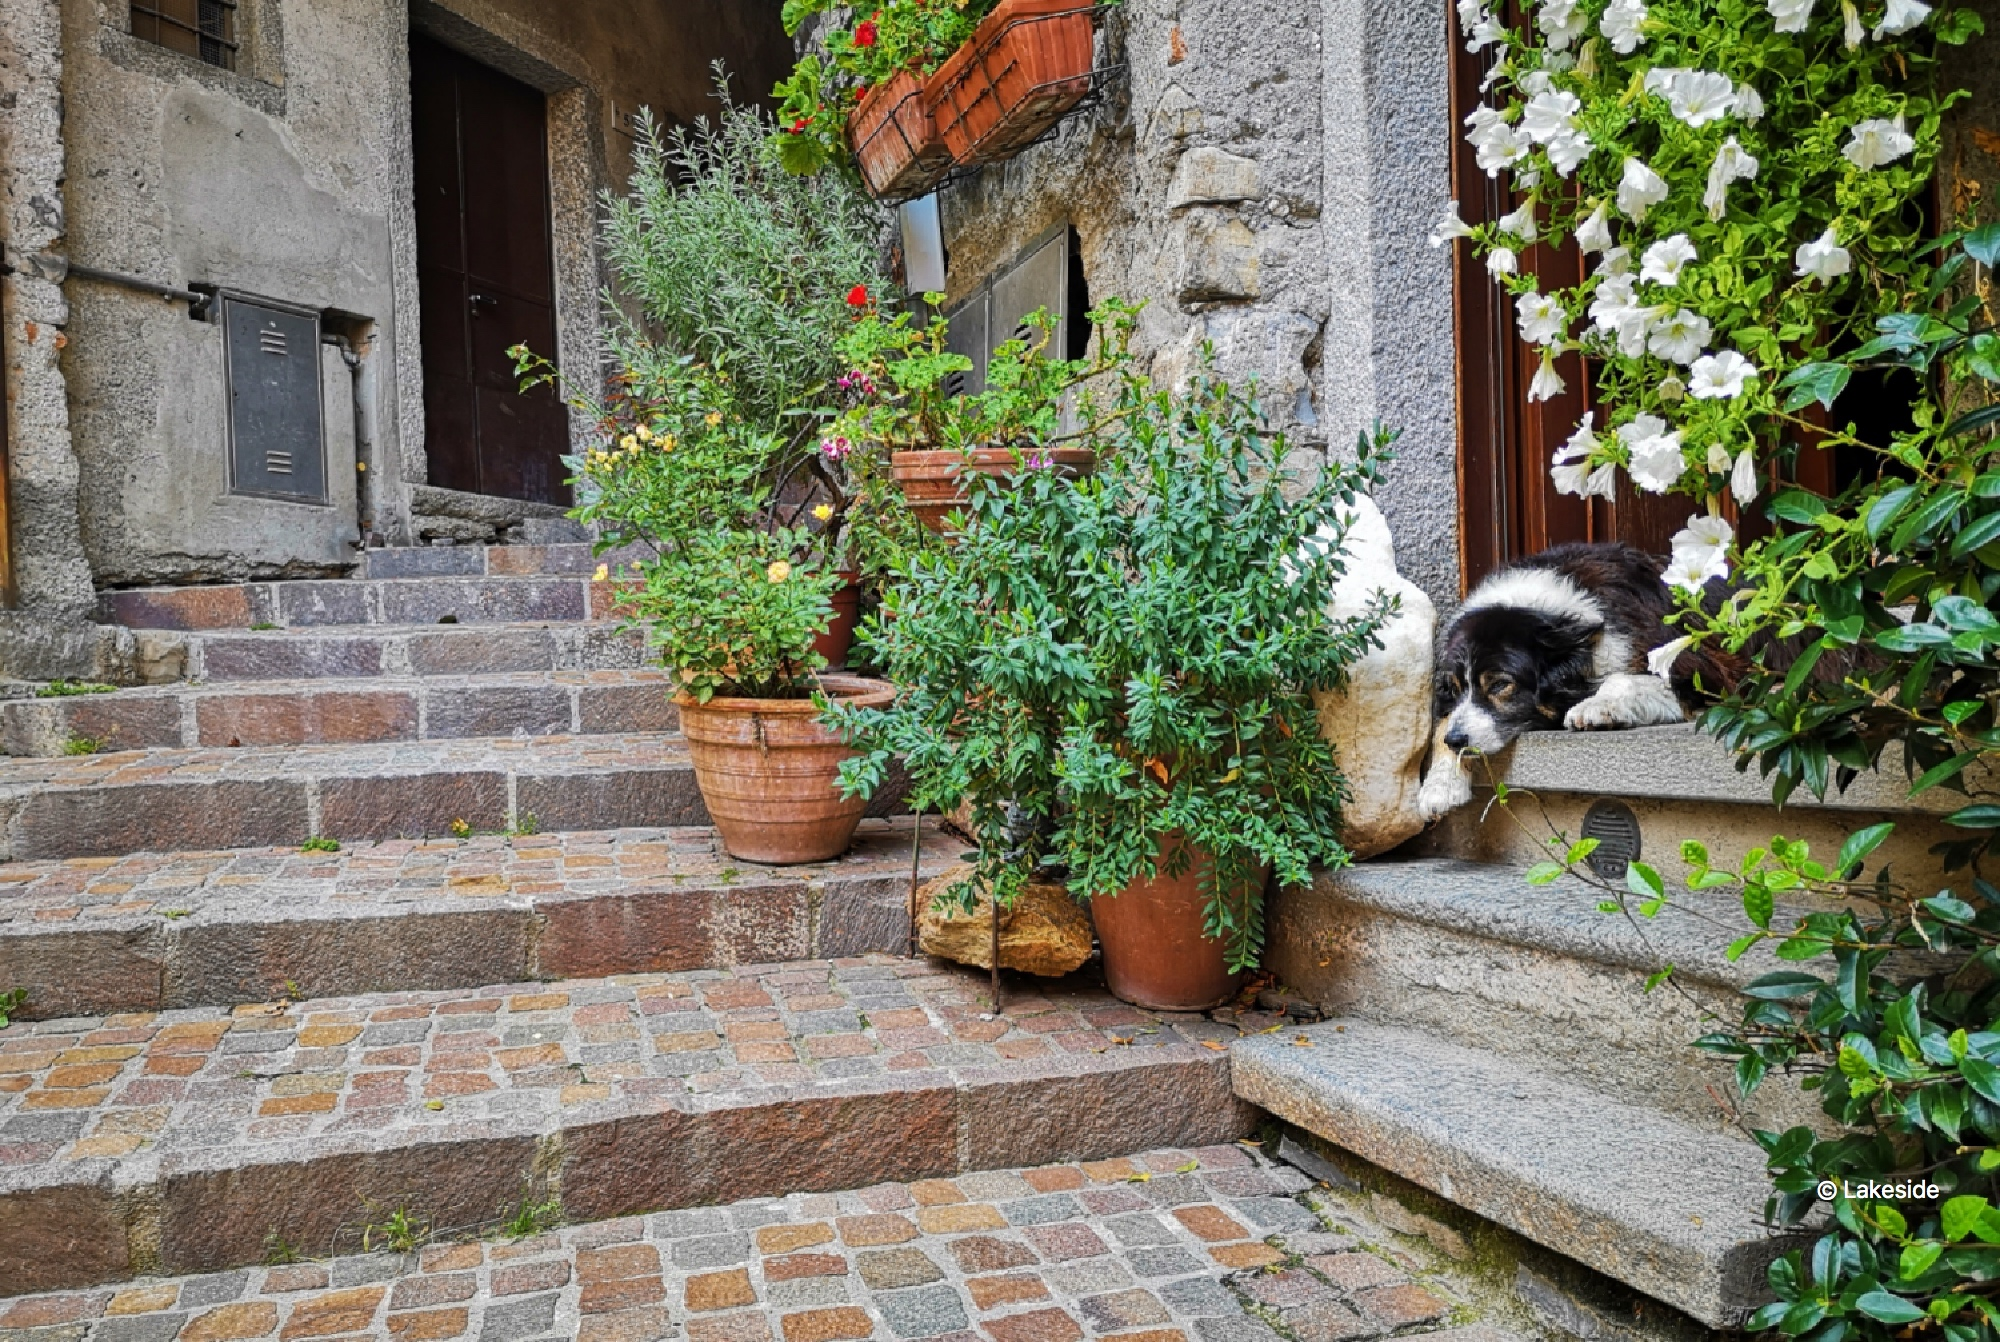 Our favourite dog, always having a nap at the entrance of that beautiful house